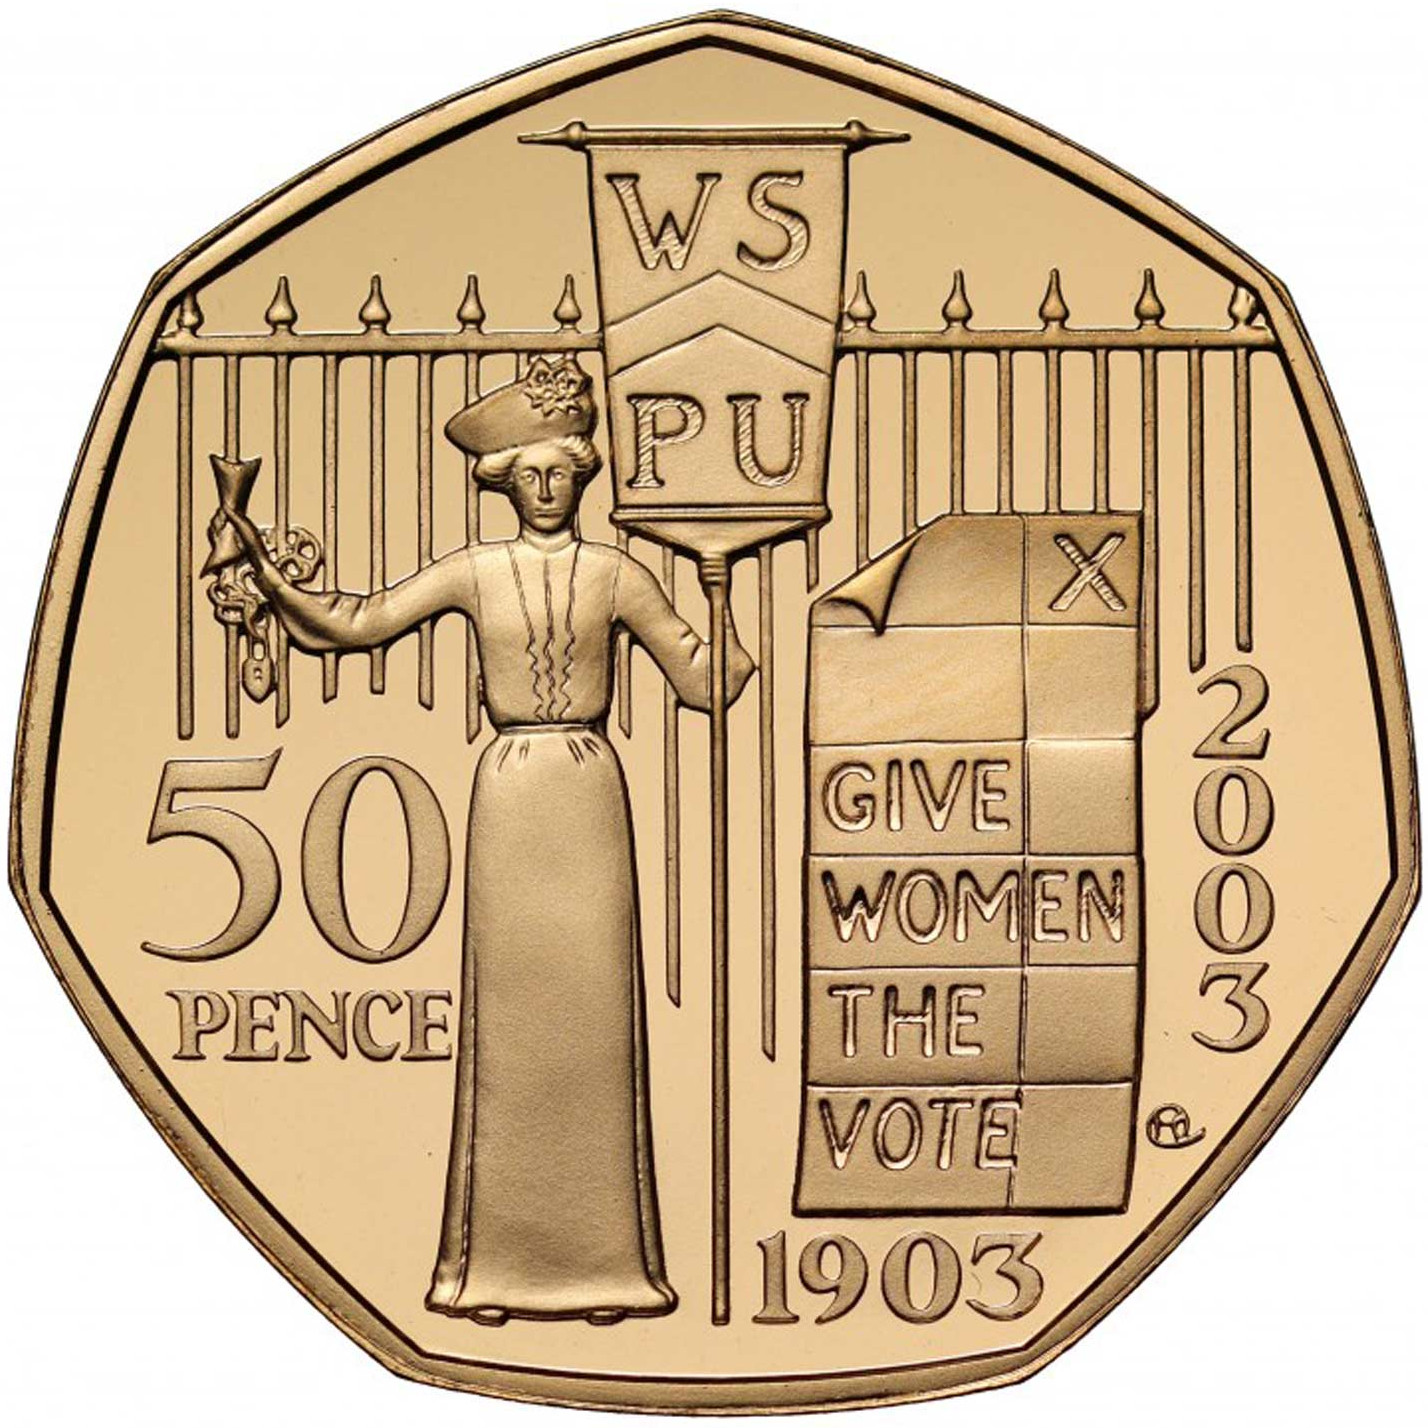 Fifty Pence 2003 Suffragettes: Photo 2003 Suffragette UK 50 Pence Gold Coin